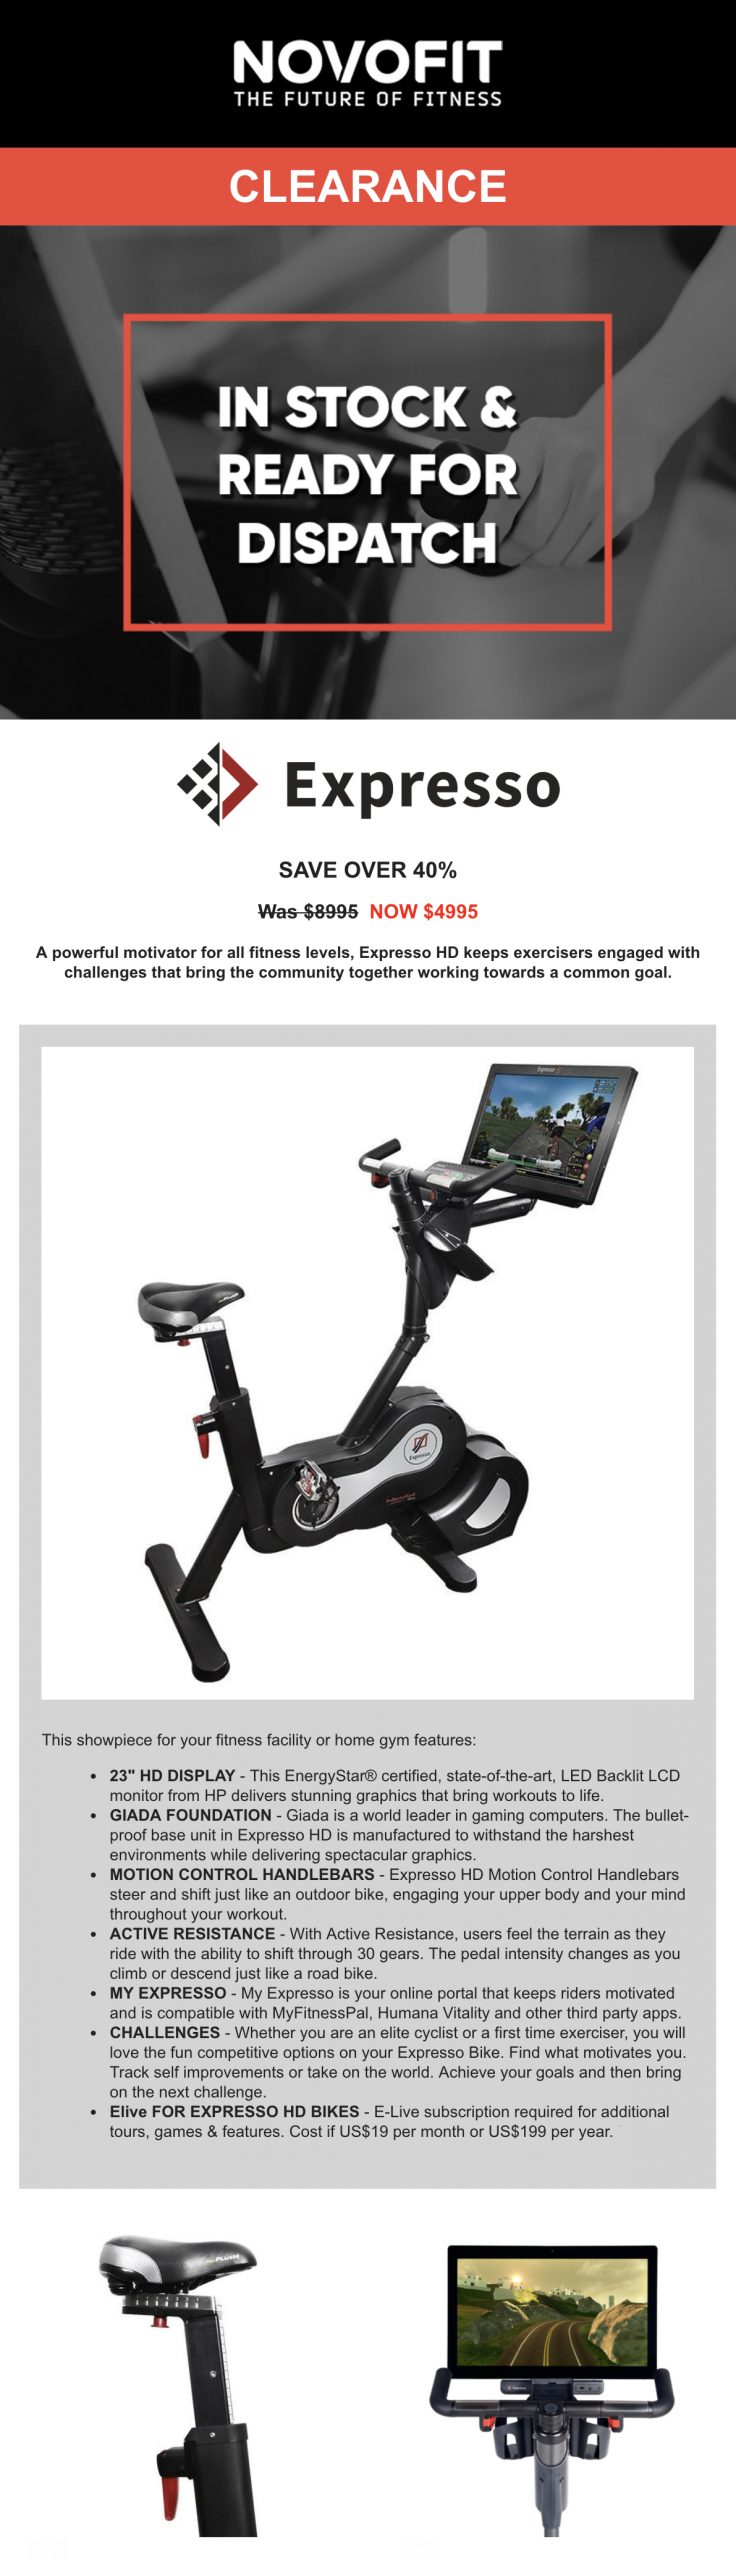 Expresso HD Upright Bike from Novofit - Clearance Sale